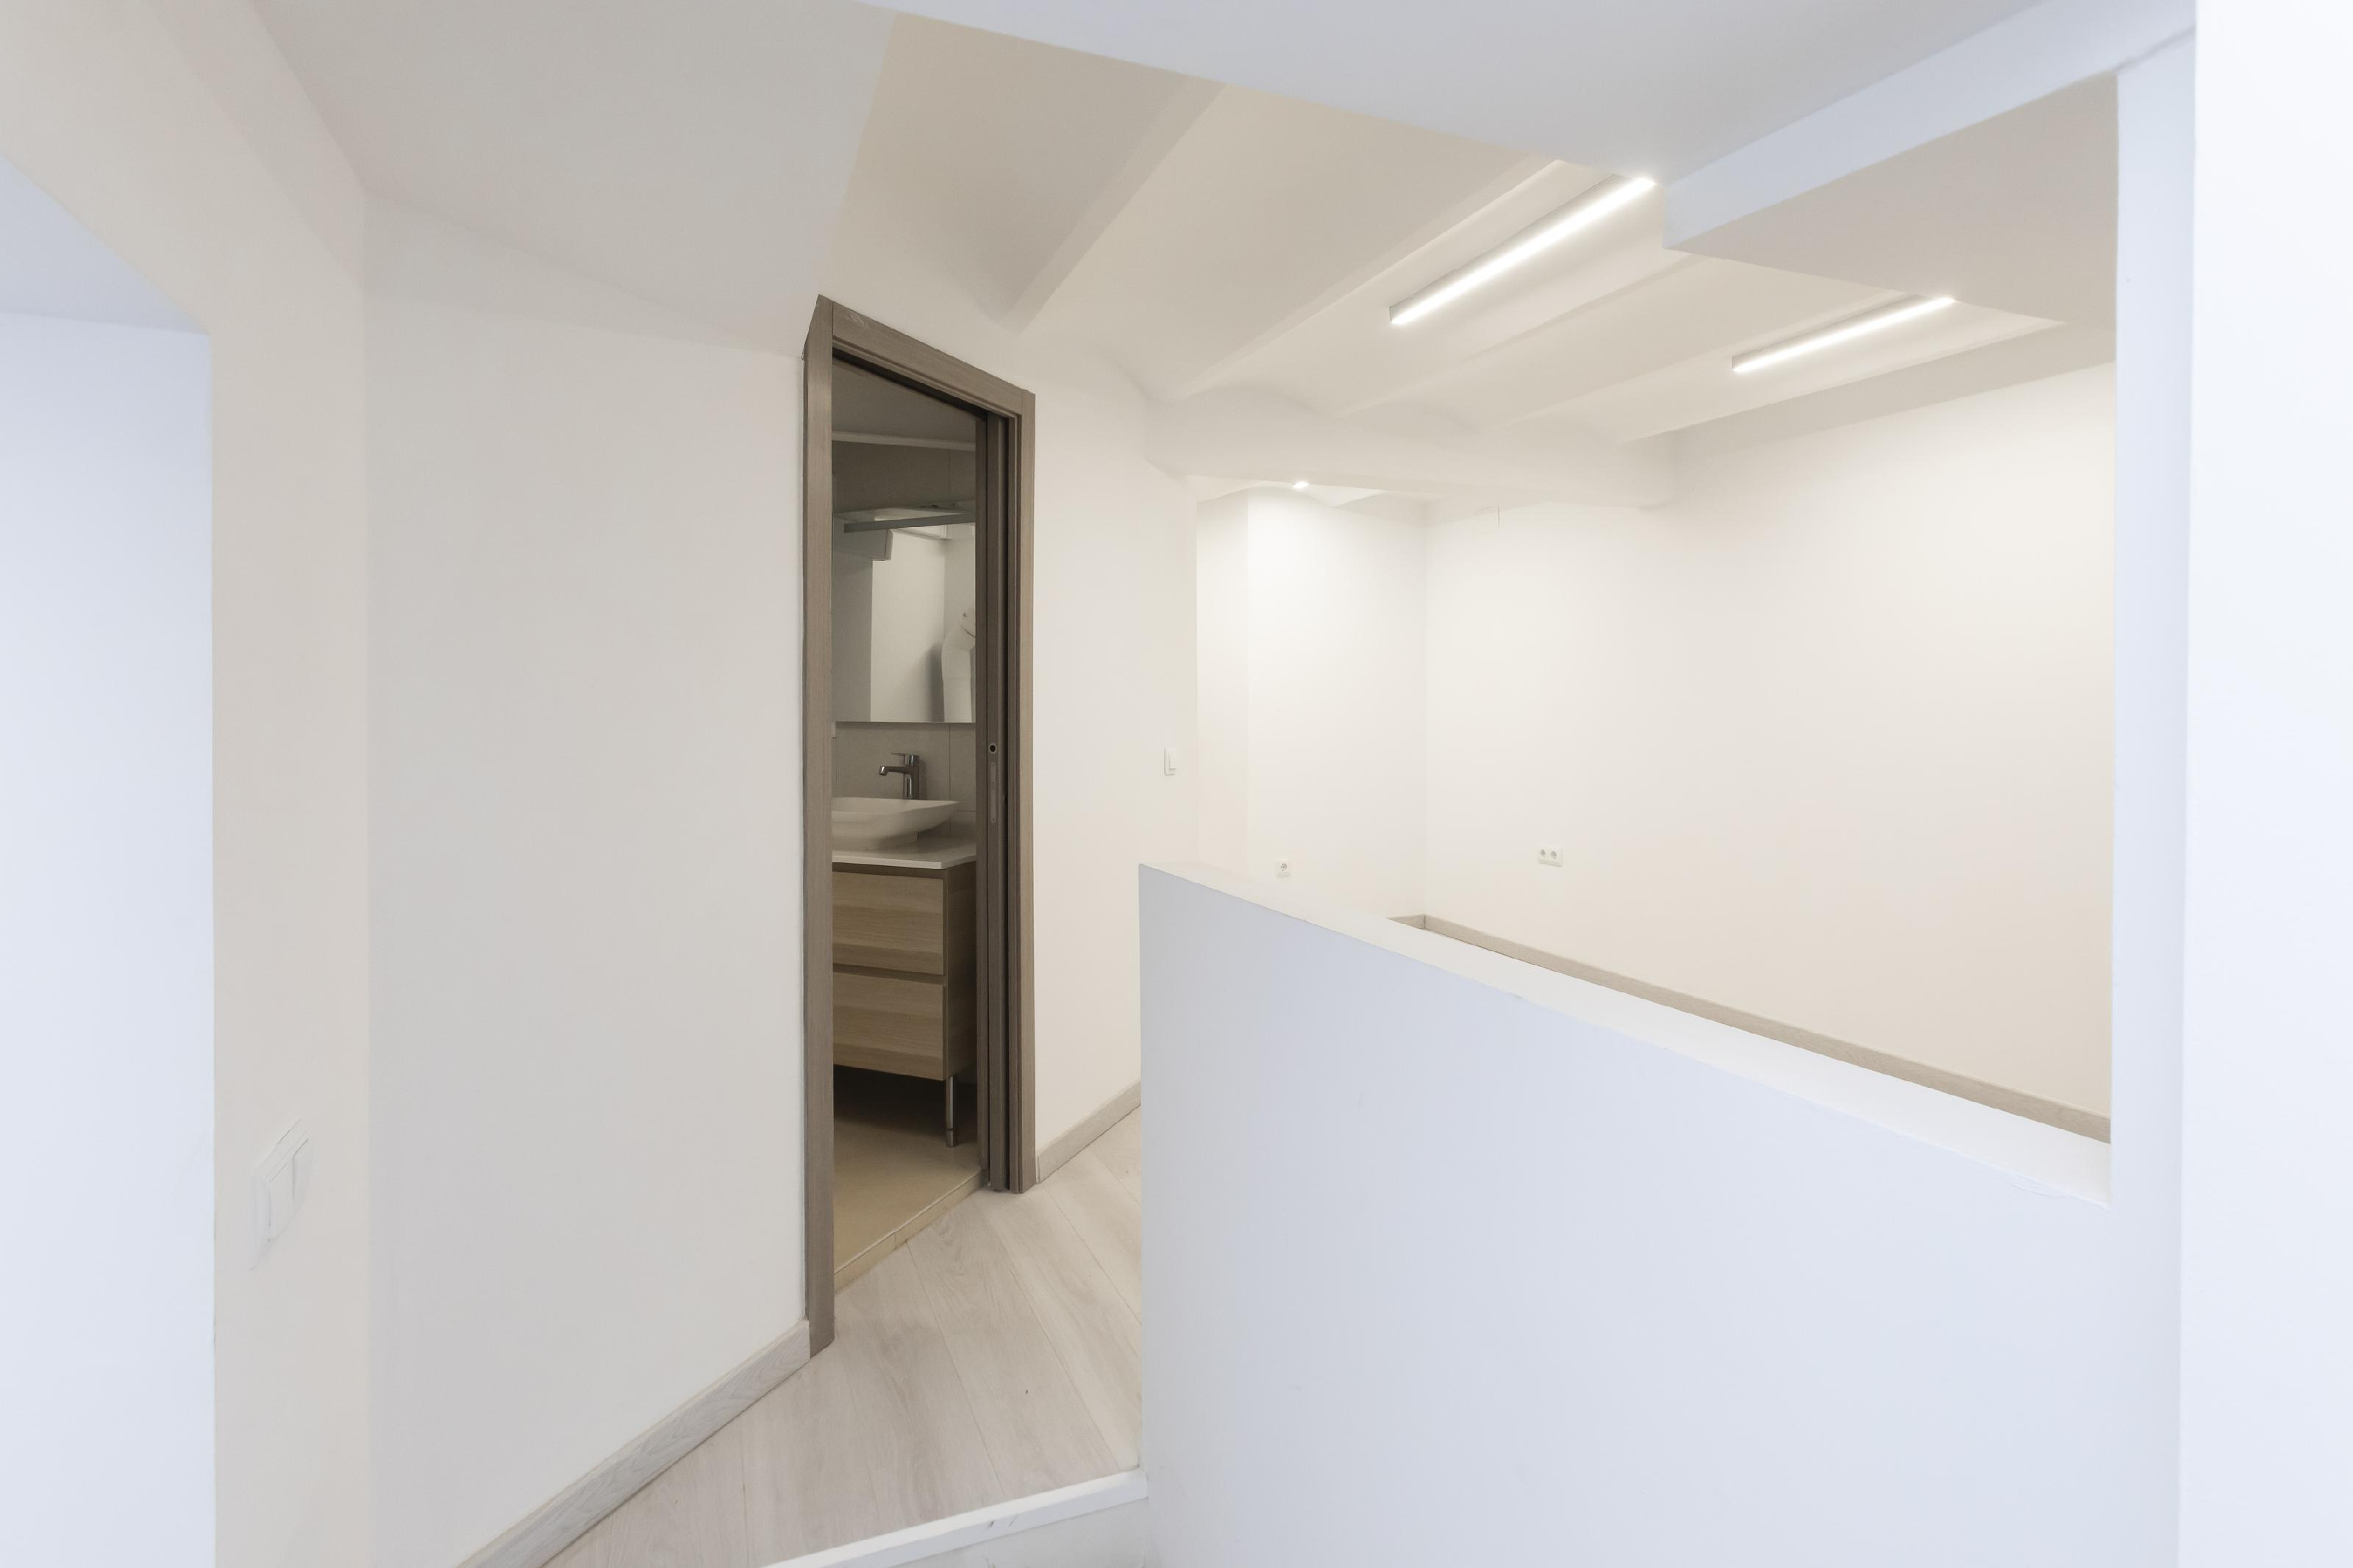 242978 Flat for sale in Gràcia, Camp Grassot and Gràcia Nova 18